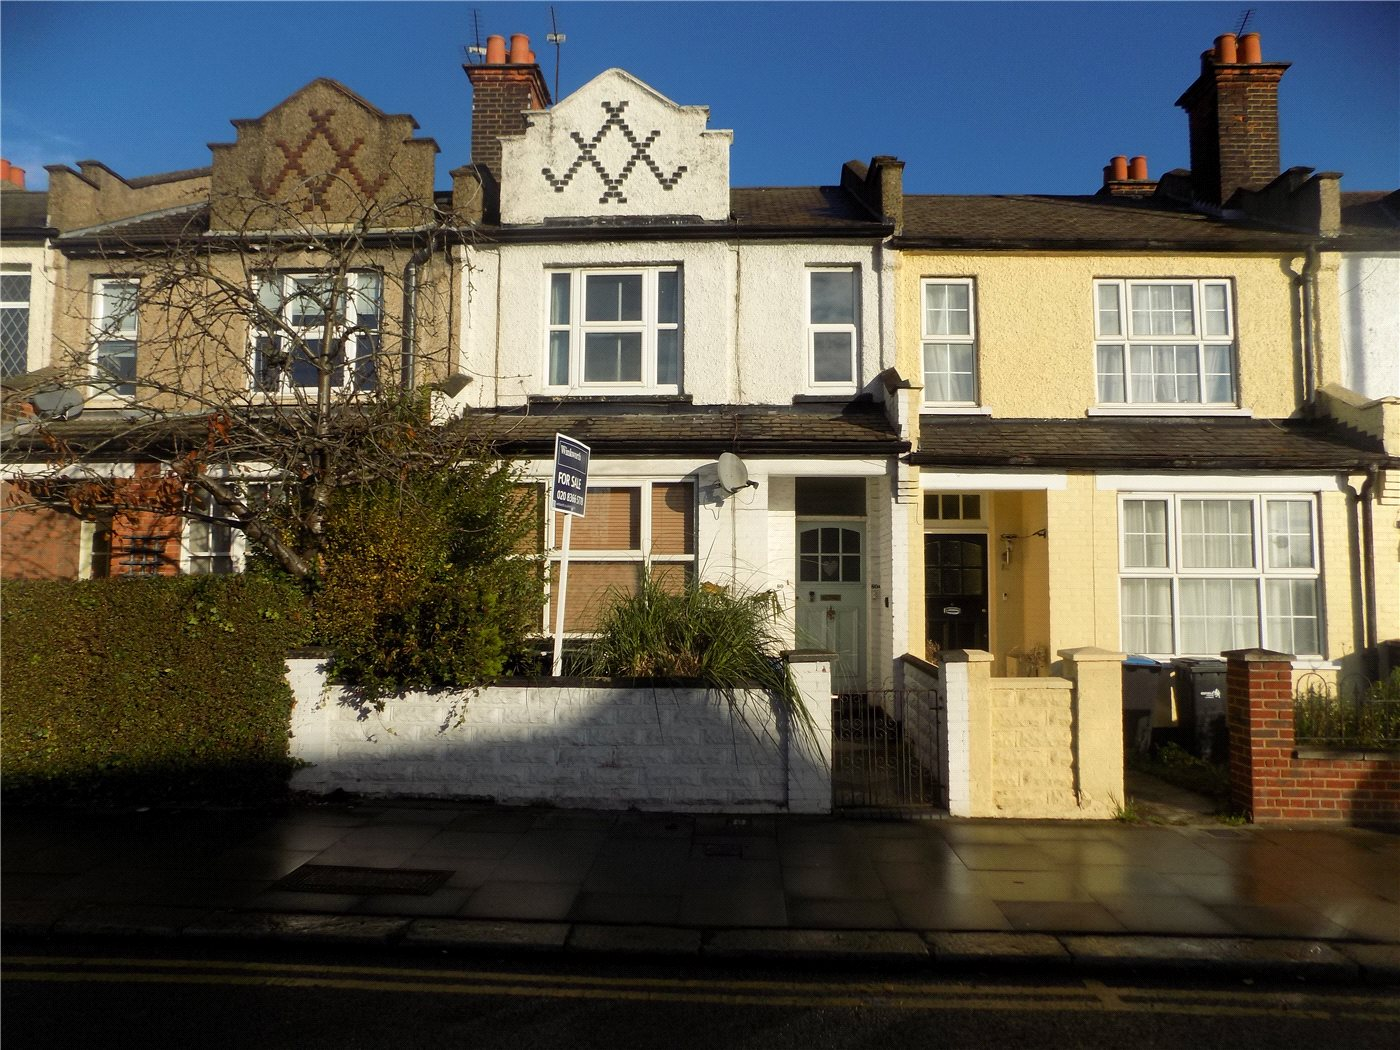 2 Bedrooms Maisonette Flat for sale in Southbury Road, Enfield, EN1